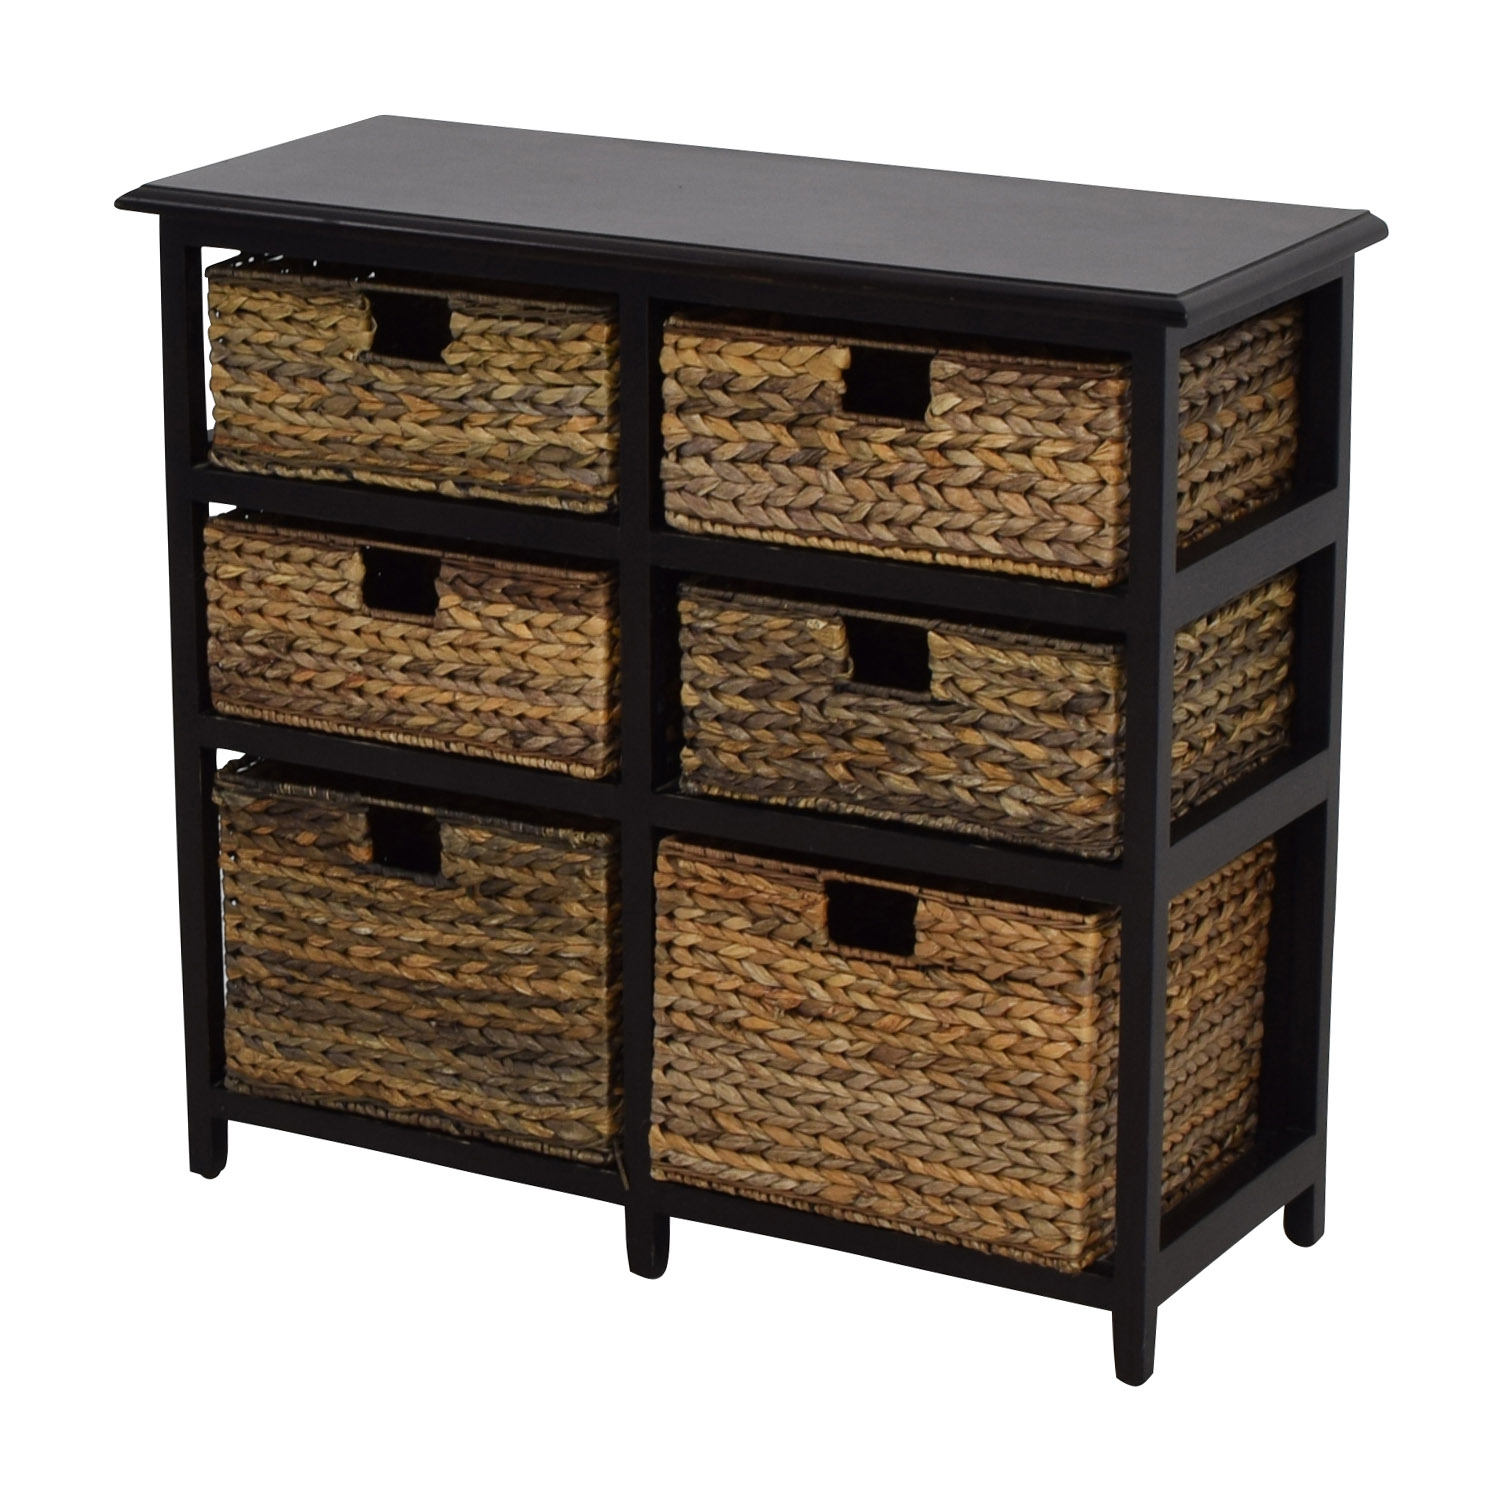 Great ... Pier 1 Imports Pier 1 Imports Black Wicker Storage Drawers Black ...